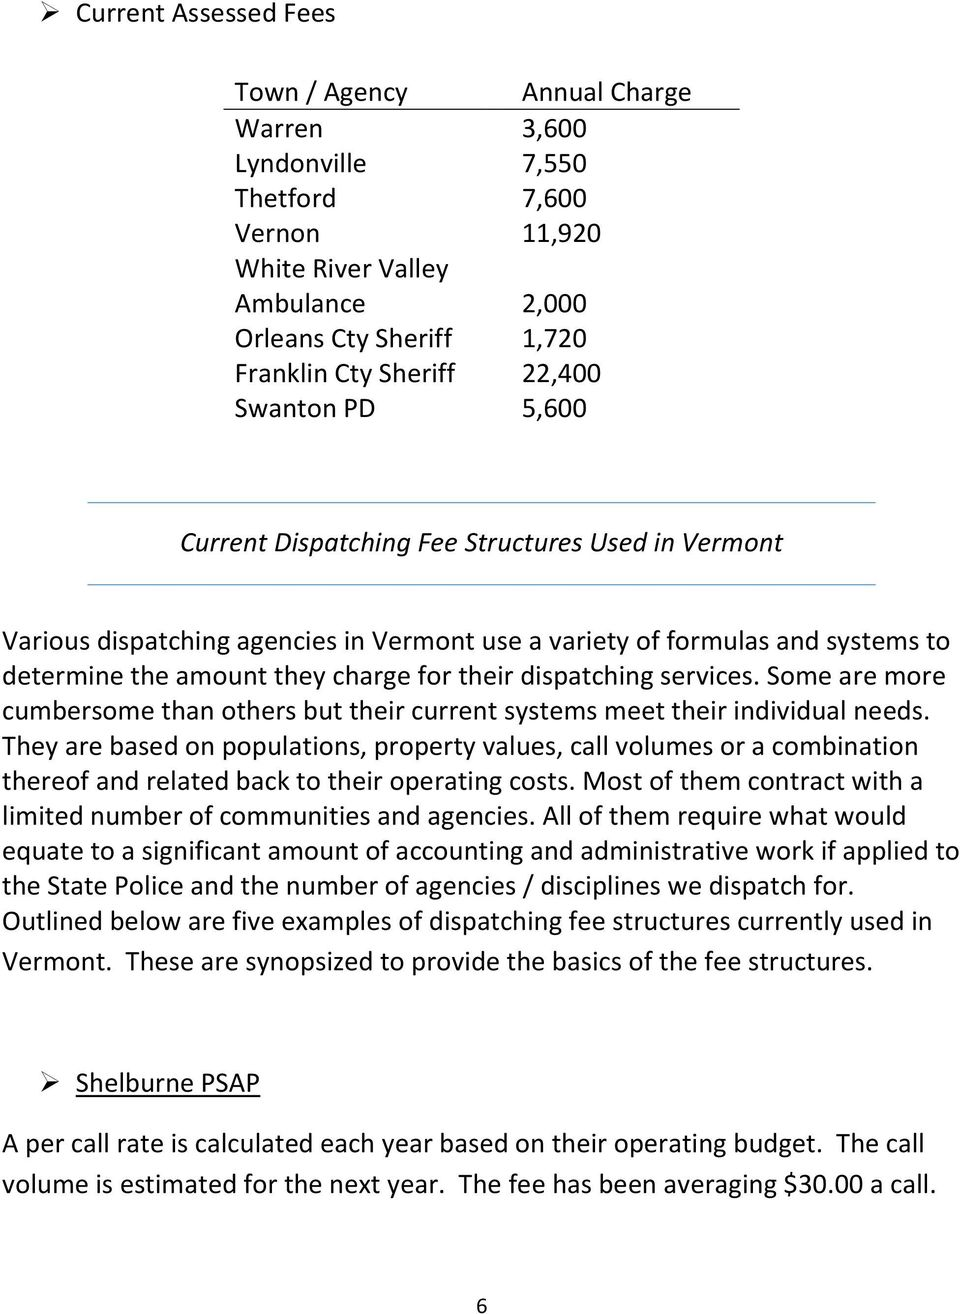 Vermont Department of Public Safety State Police Division - PDF